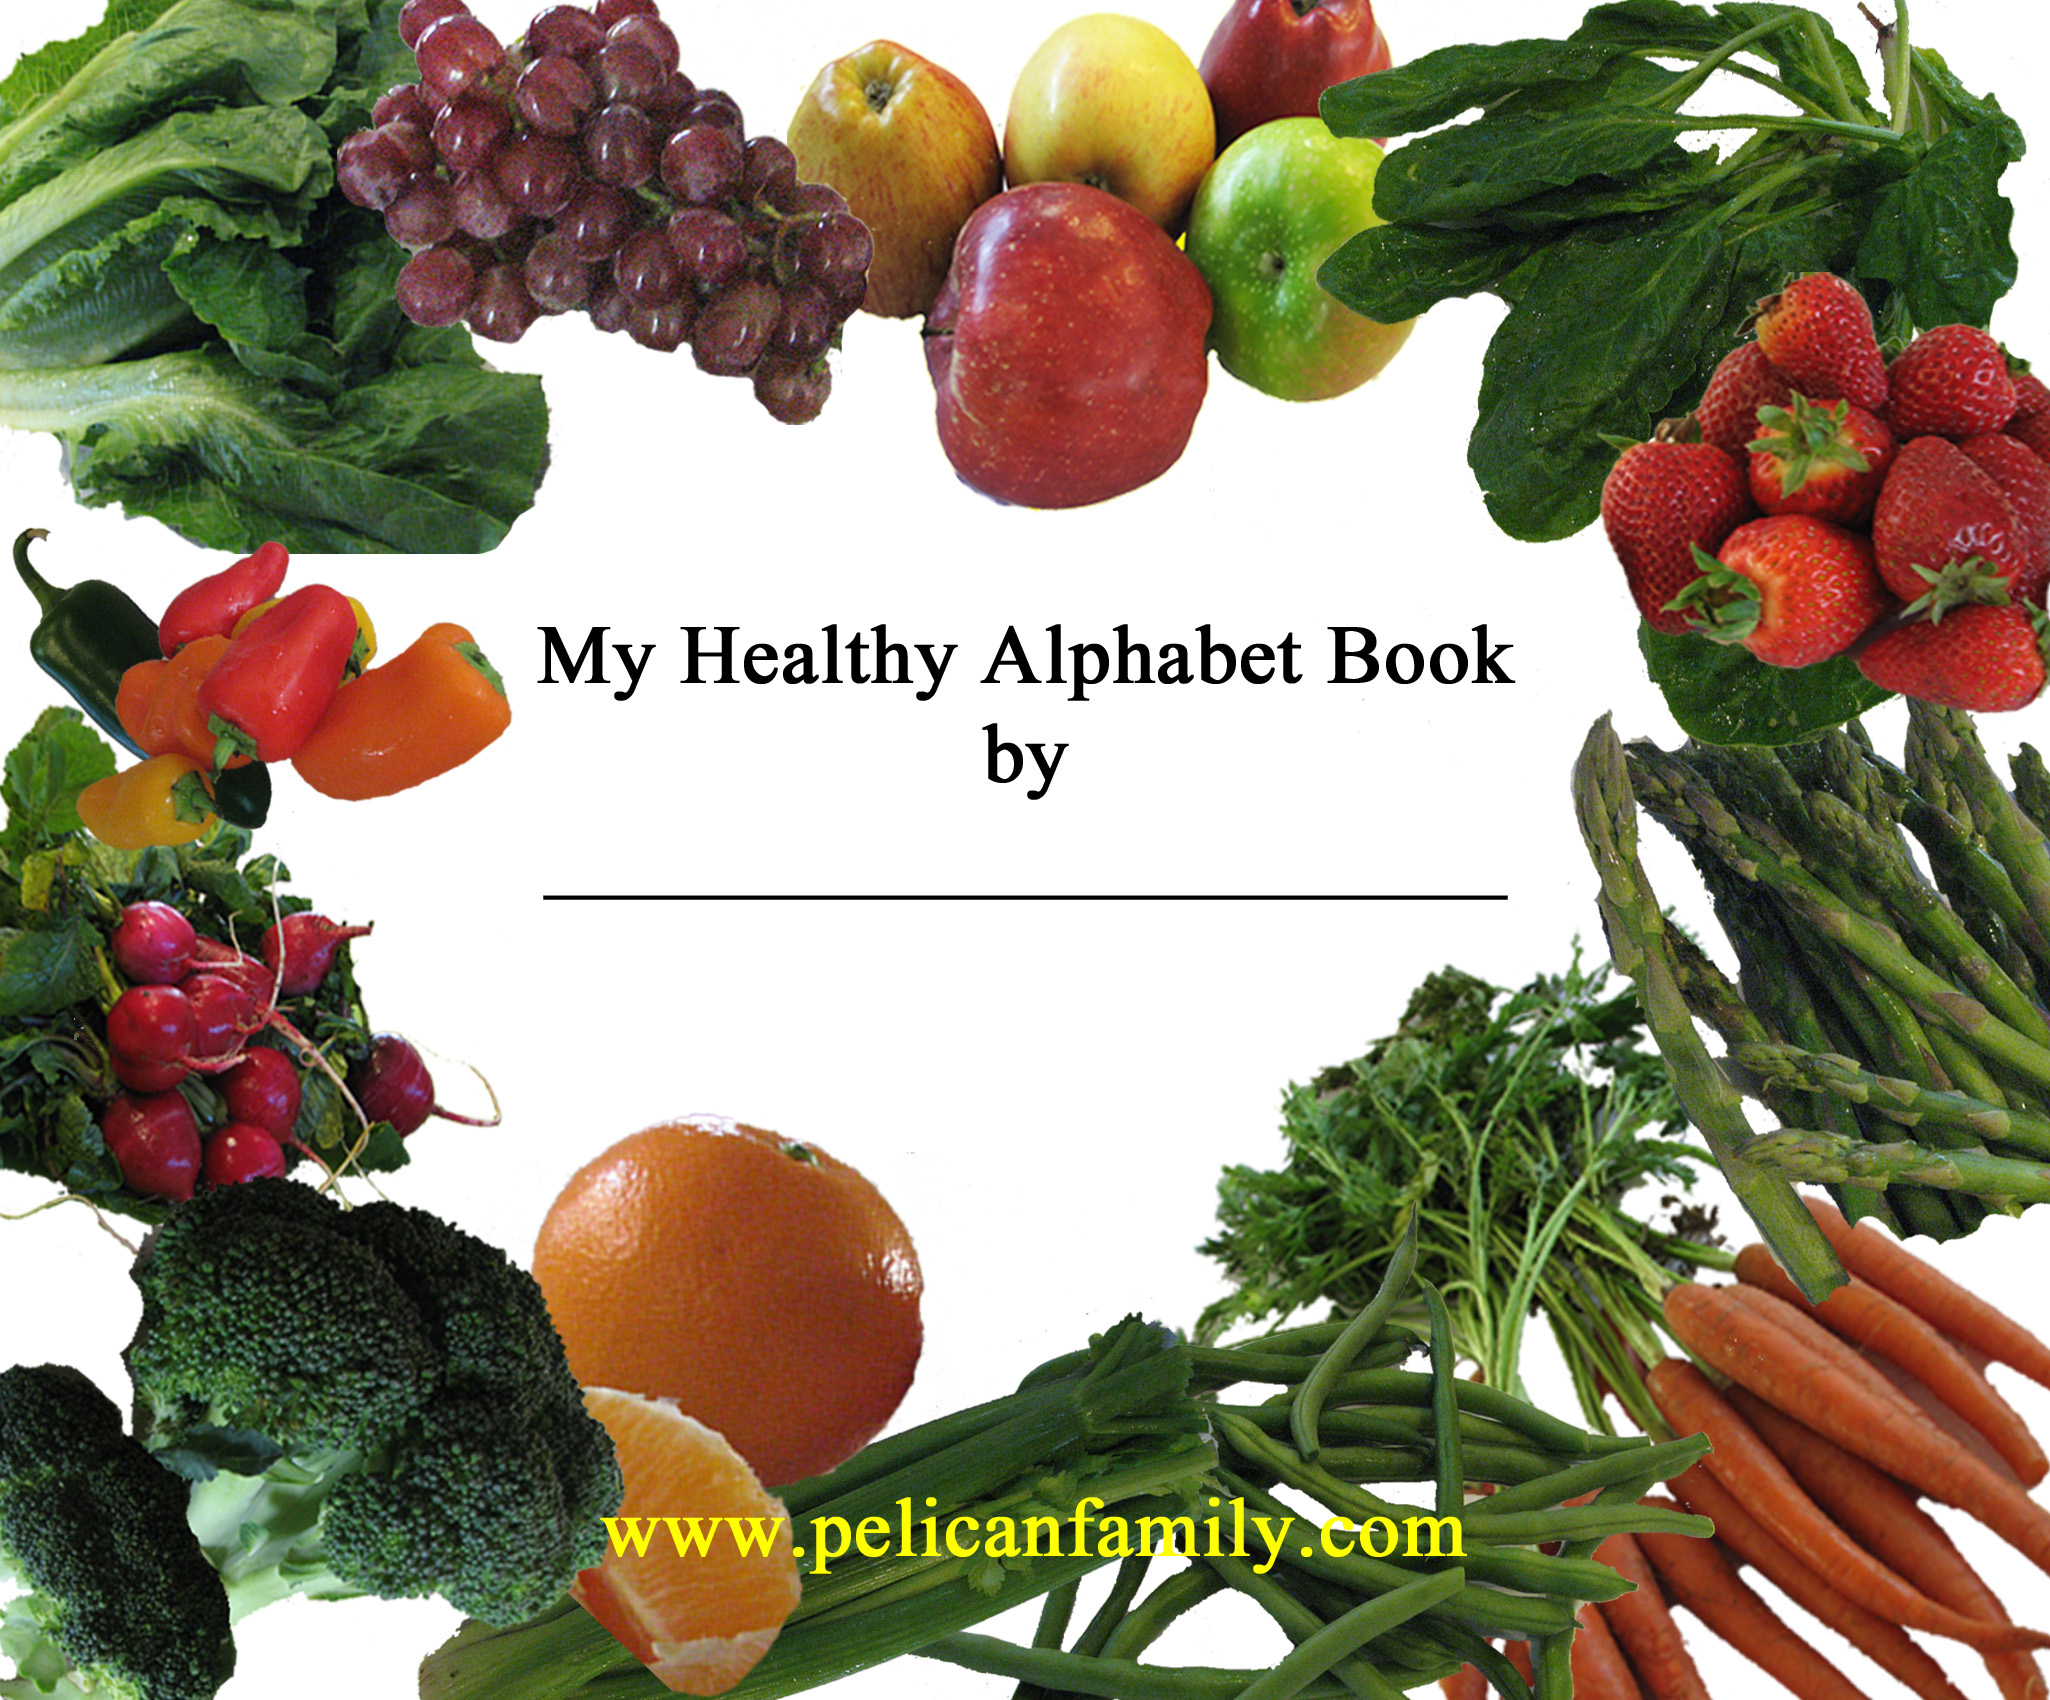 Resources for parents and teachers Pelican Family Series Healthy Alphabet Book Cover Pelican Family Series